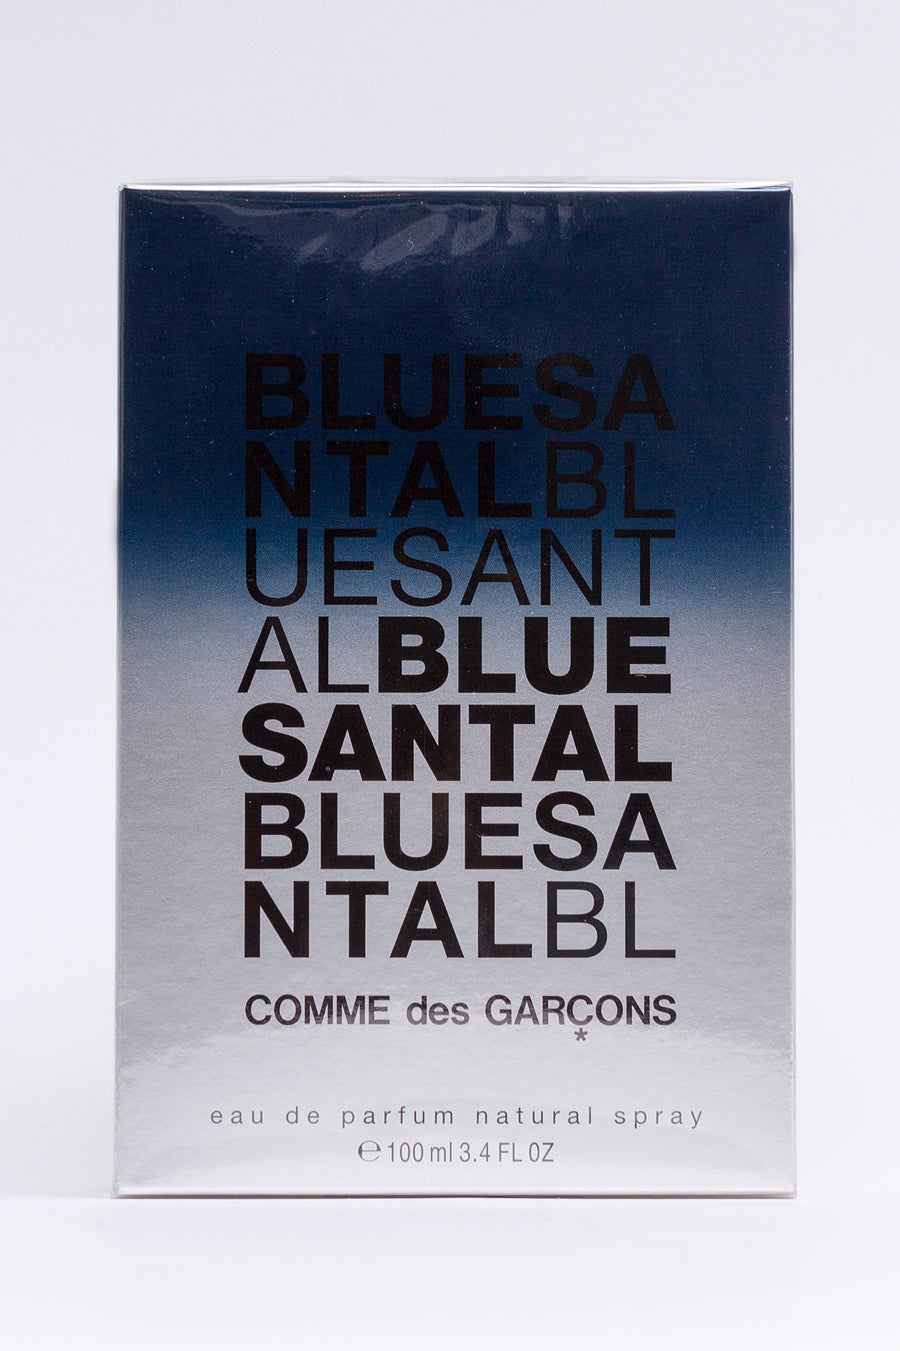 Blue Santal Eau de Parfum 100 mL